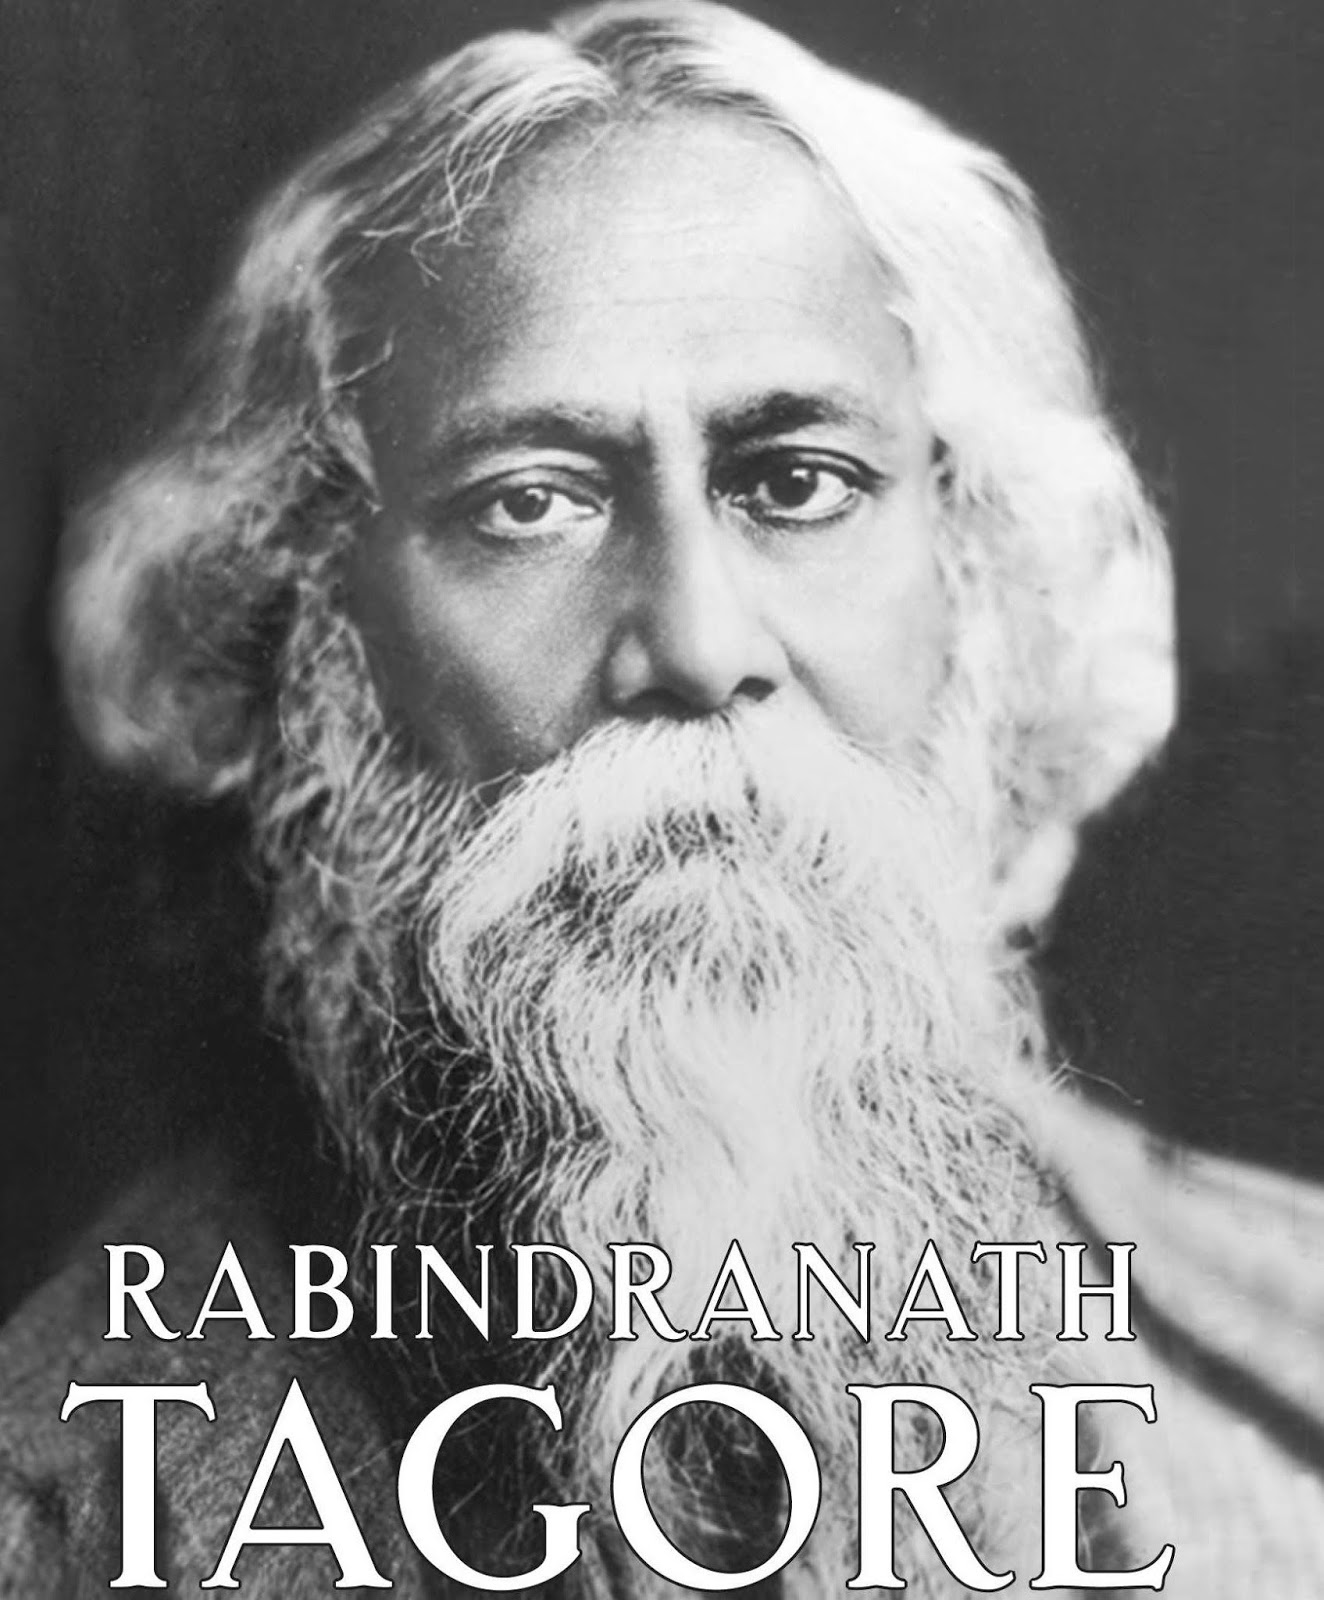 rabindranath tagore essay essay of rabindranath tagore an essay on  sample essay on the poet rabindranath tagore in hindi